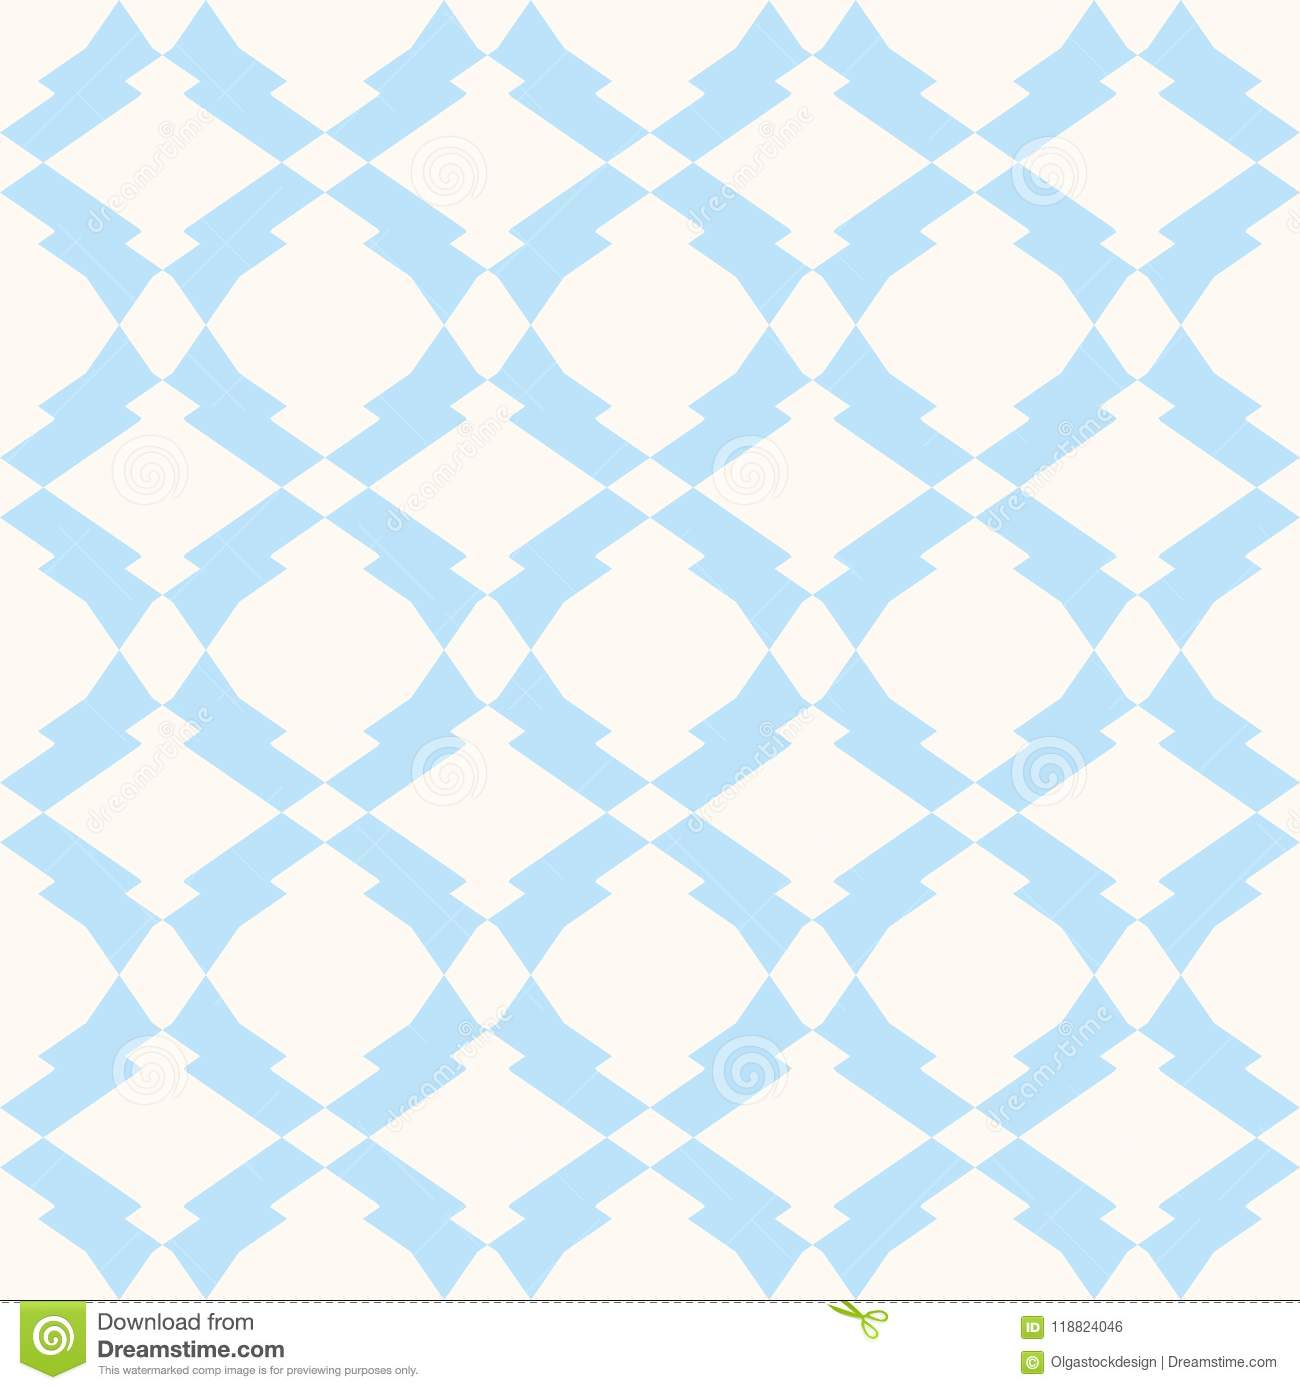 Subtle seamless pattern in white and light blue colors. Delicate ornament background.